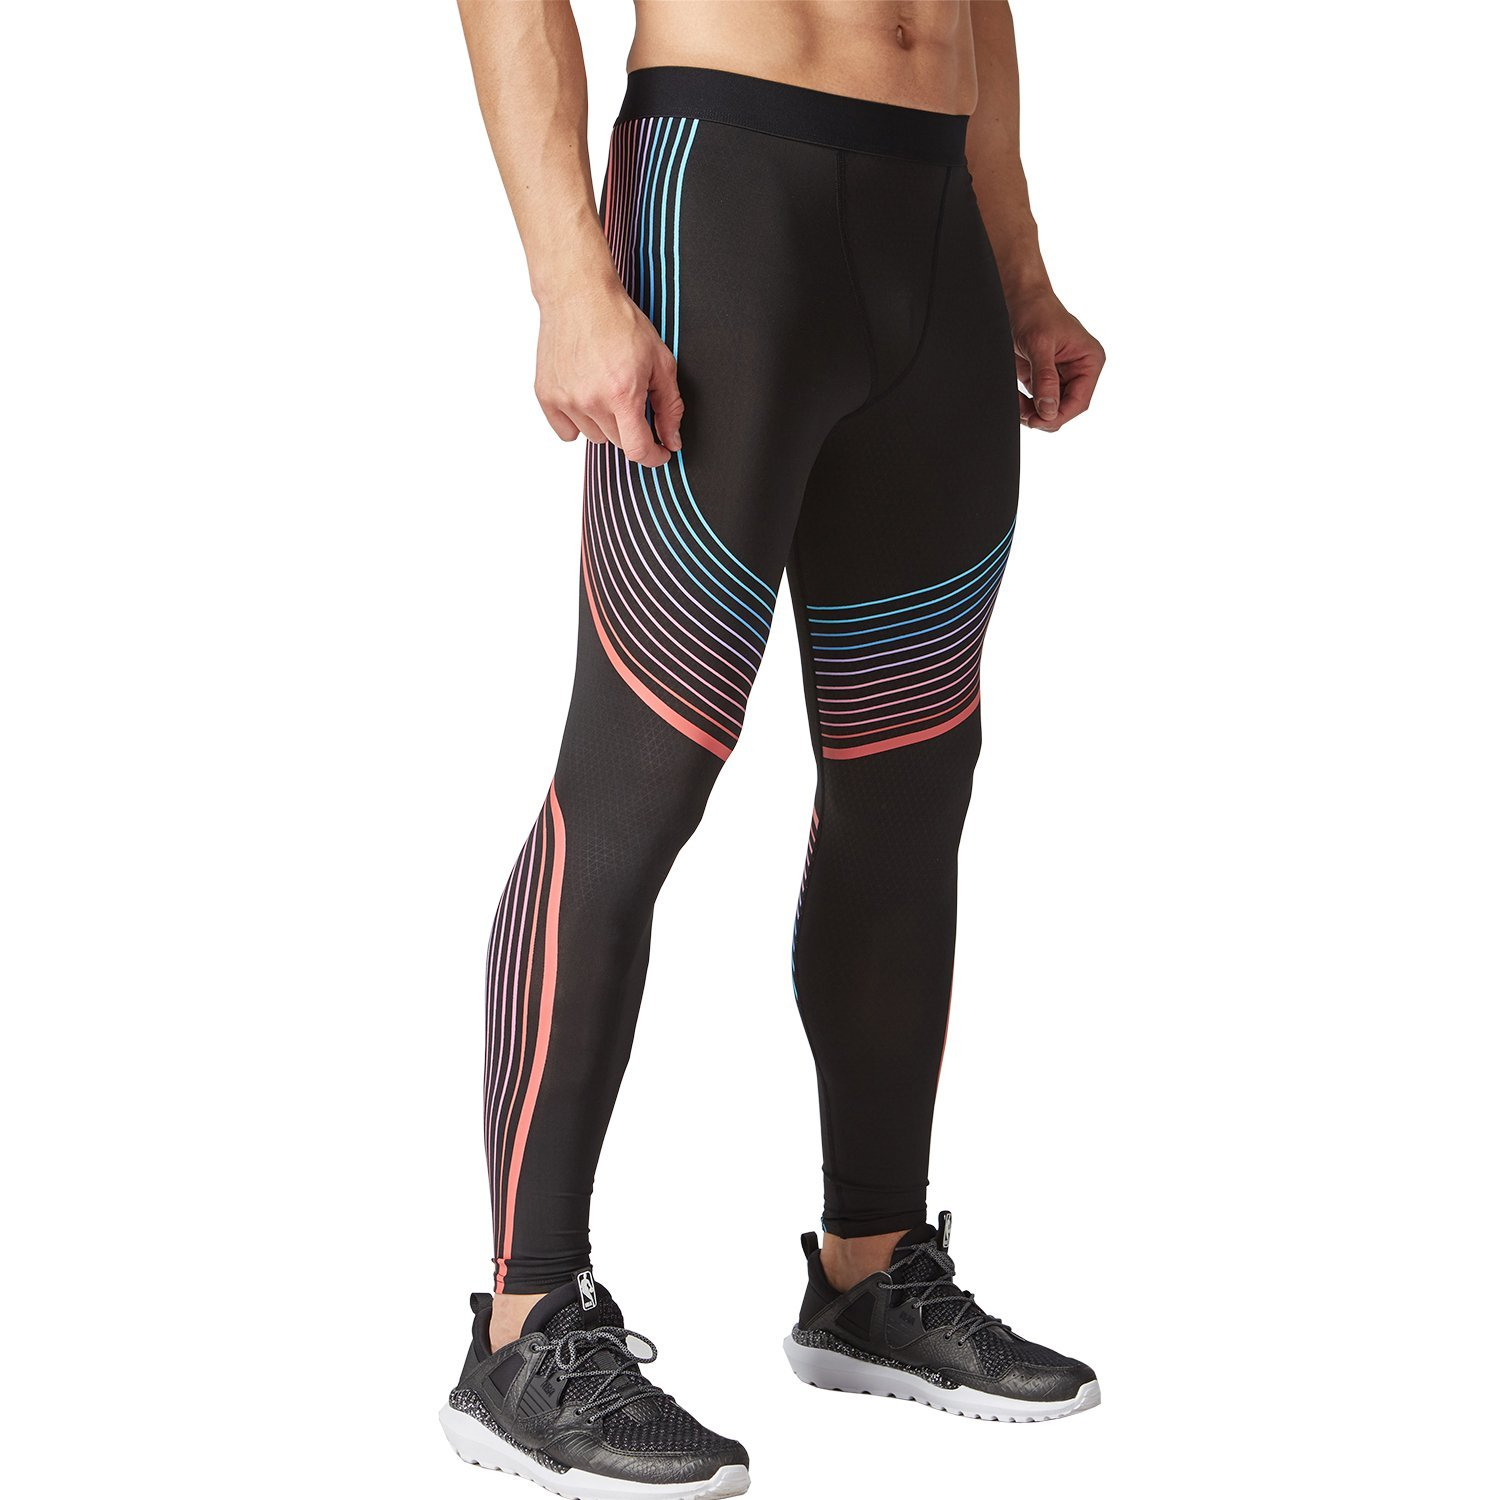 49a00299 Get Quotations · SAILAIBAO Mens Compression pants Suit for Mens's  Bodybuilding Jogging And Gym's Red Streamer printing running pants